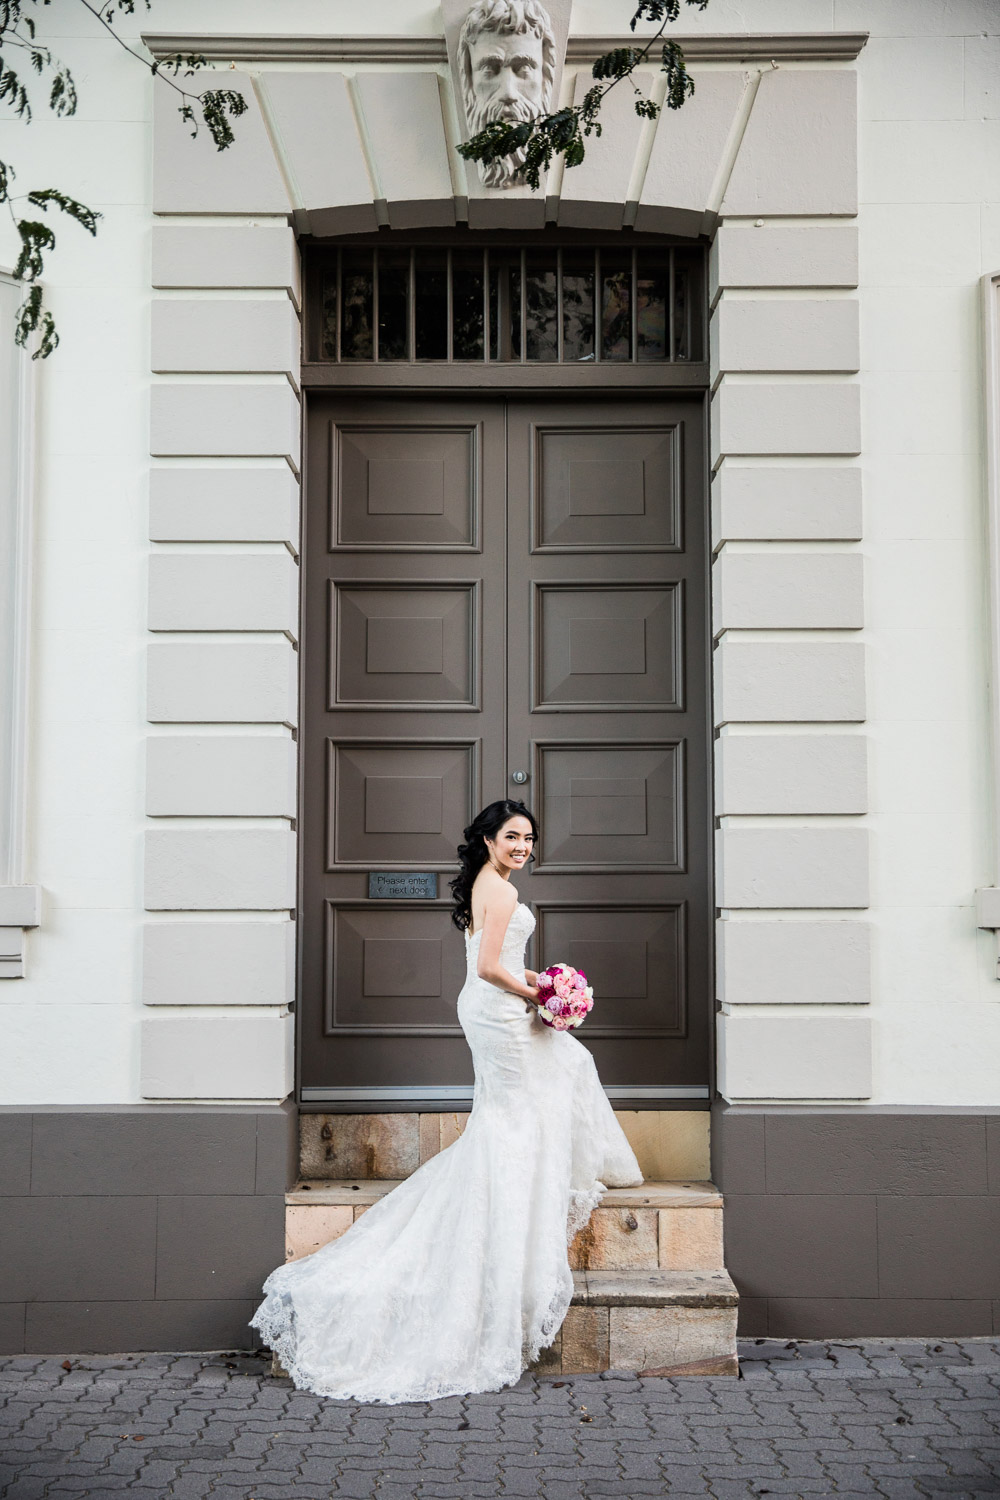 170819 Puremotion Wedding Photography Brisbane Golden Lane LinhMartin-0099